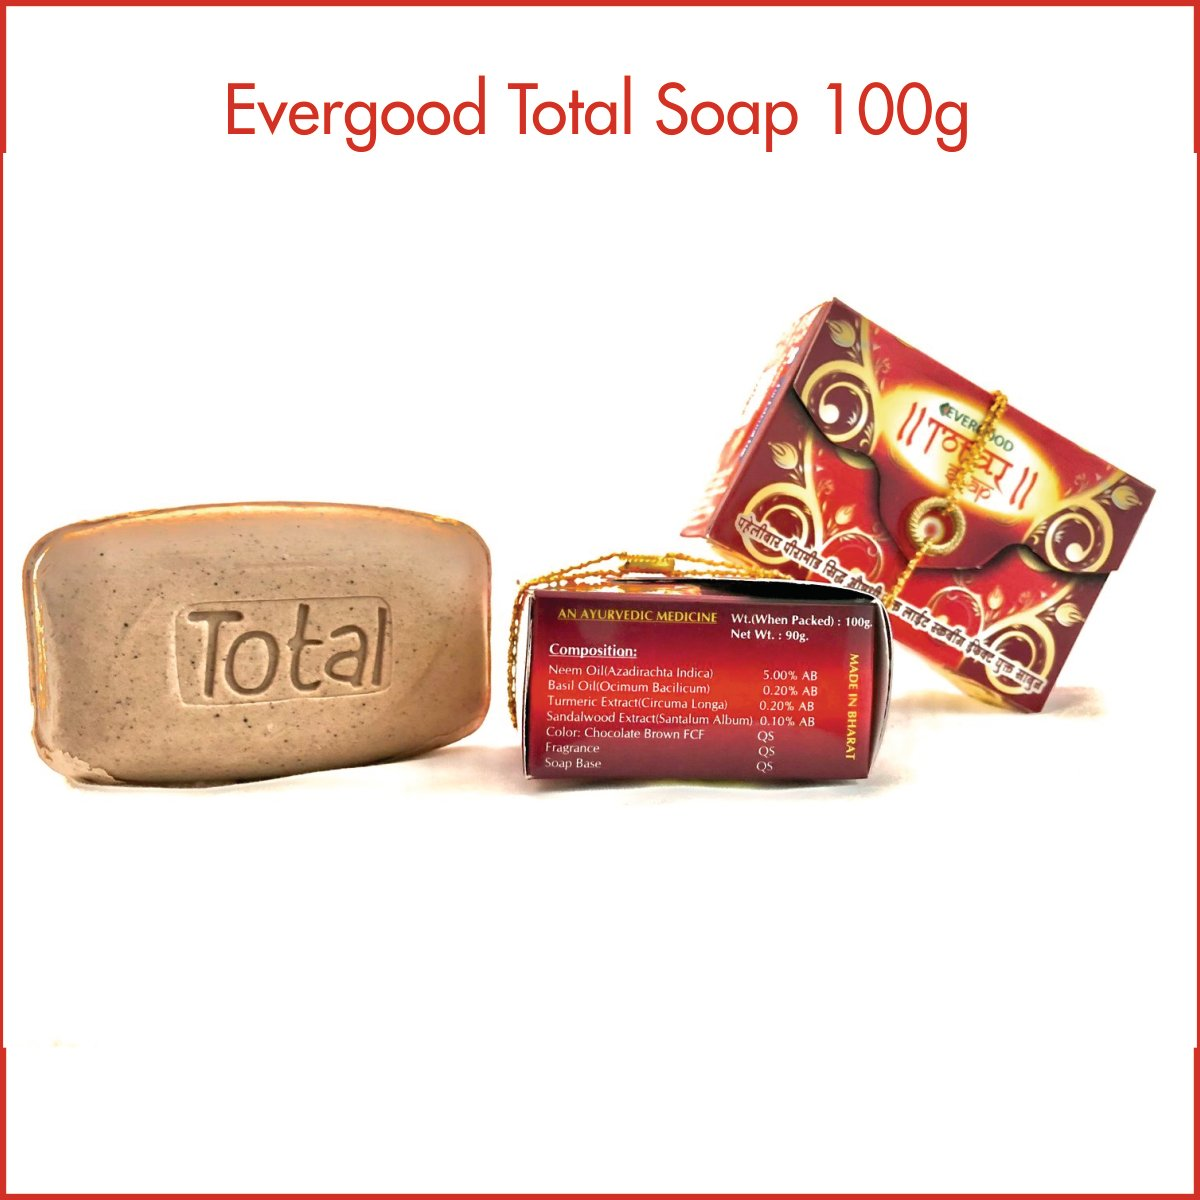 Evergood Total Soap 100g